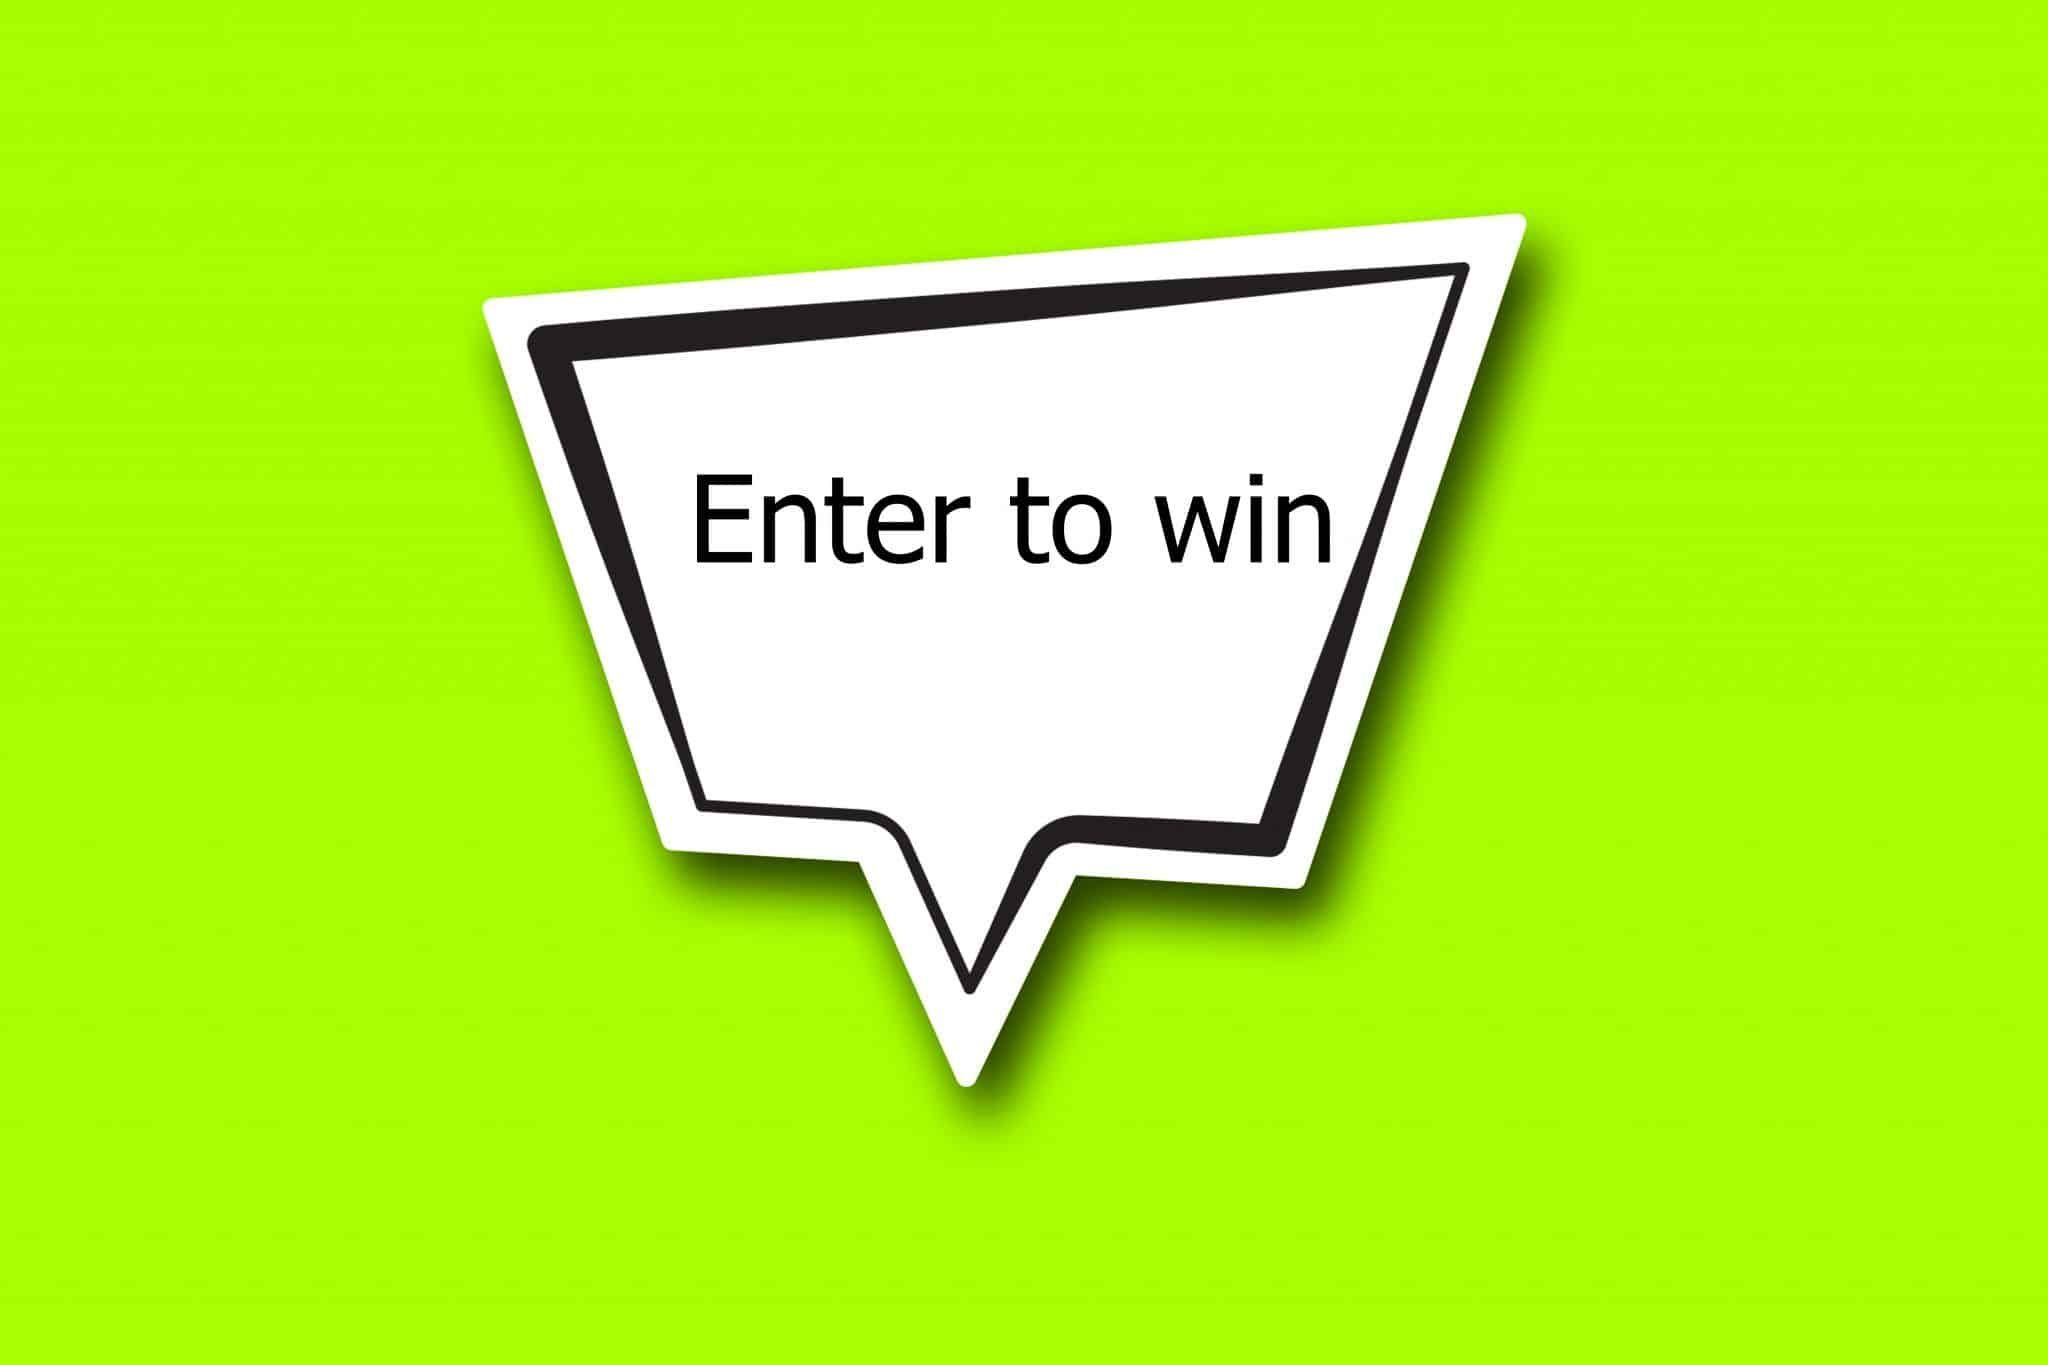 Enter to win a 200 target gift card enter to win a